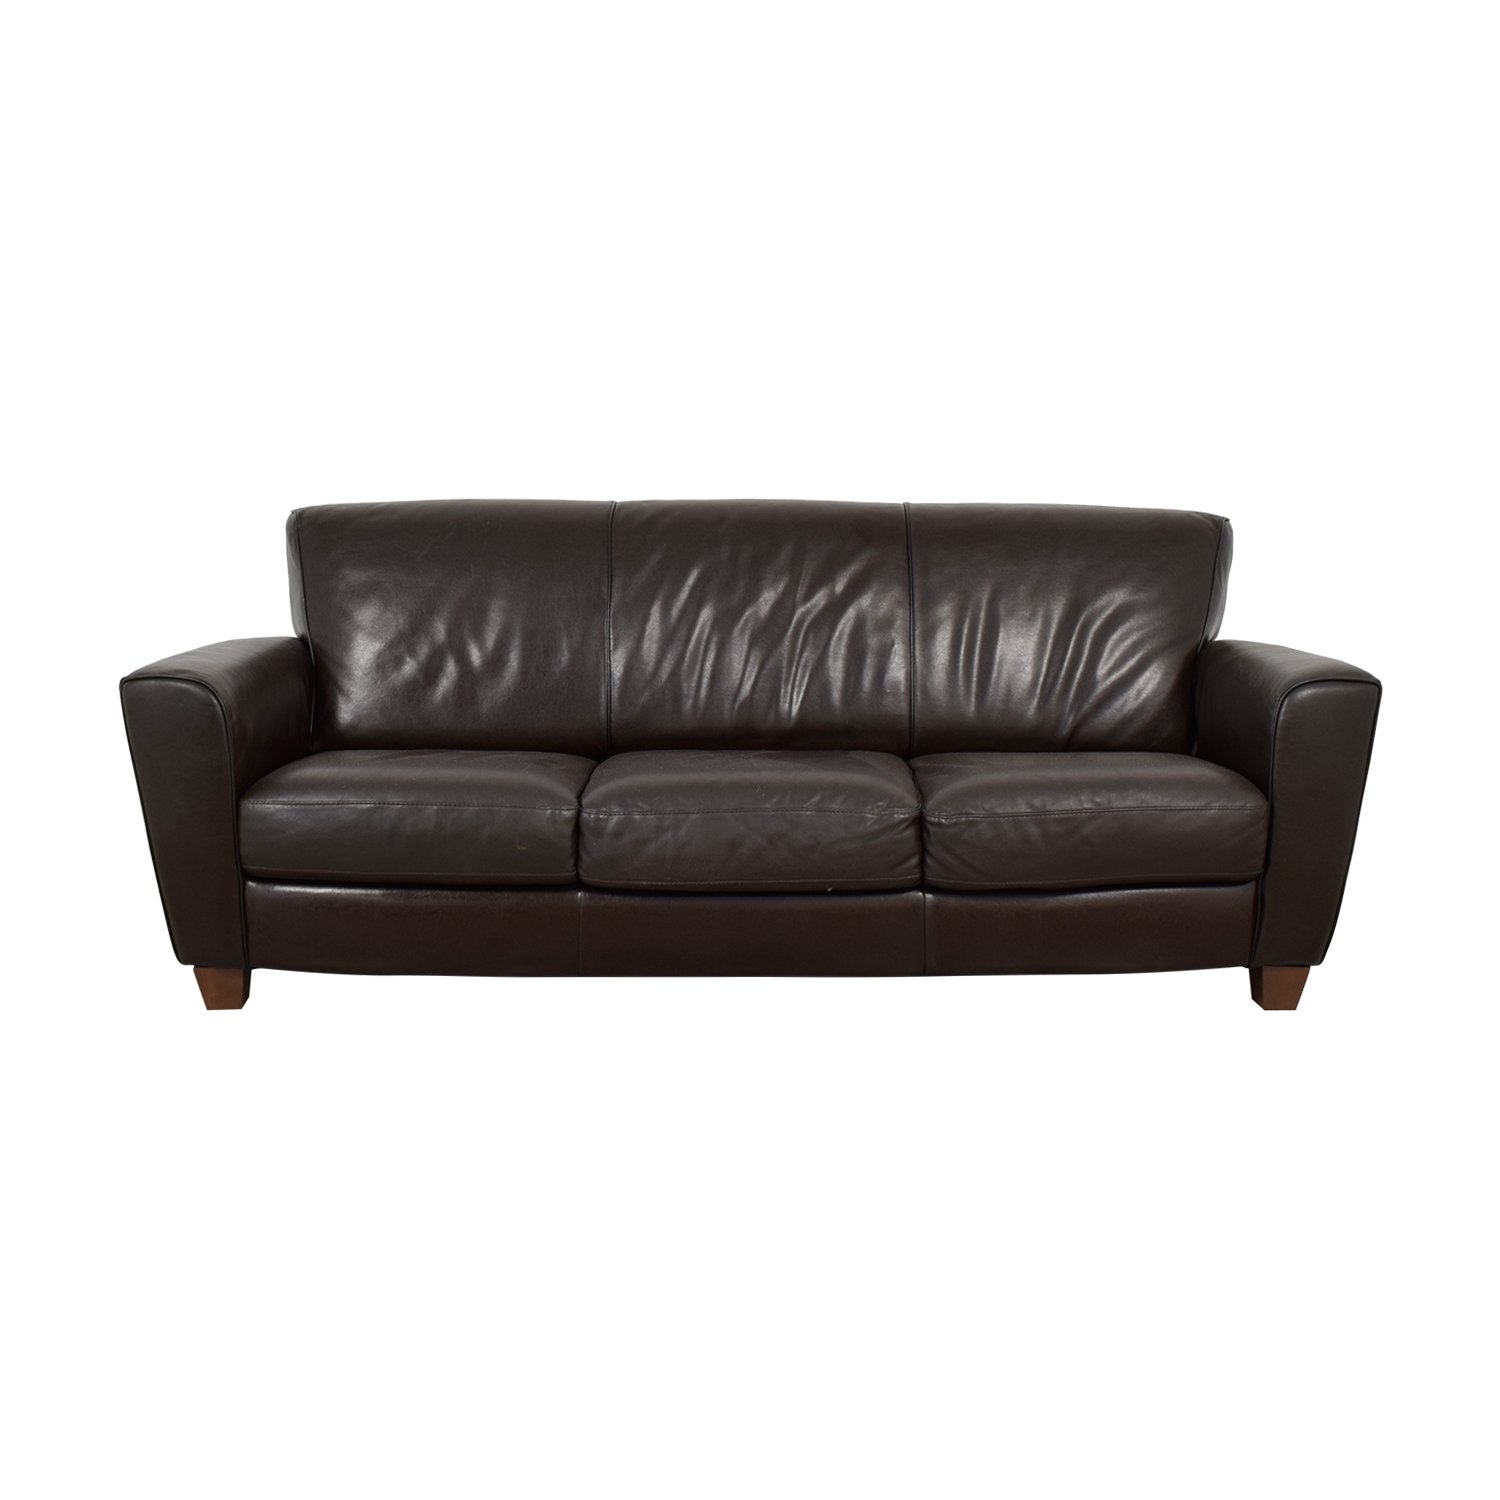 Natuzzi Brown Leather Three-Cushion Couch / Classic Sofas